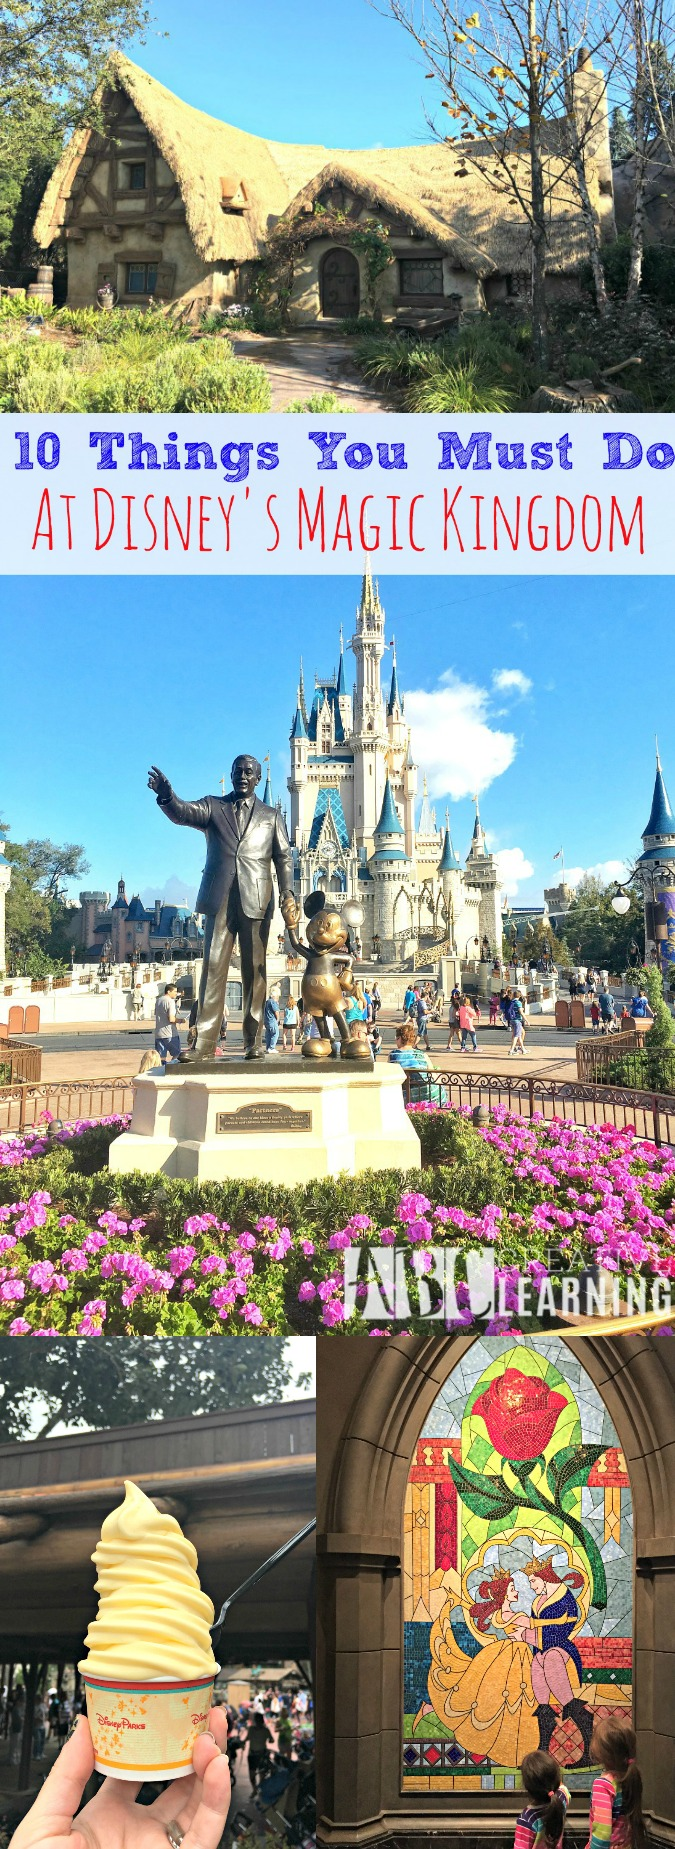 10 Things To Do At Disney's Magic Kingdom